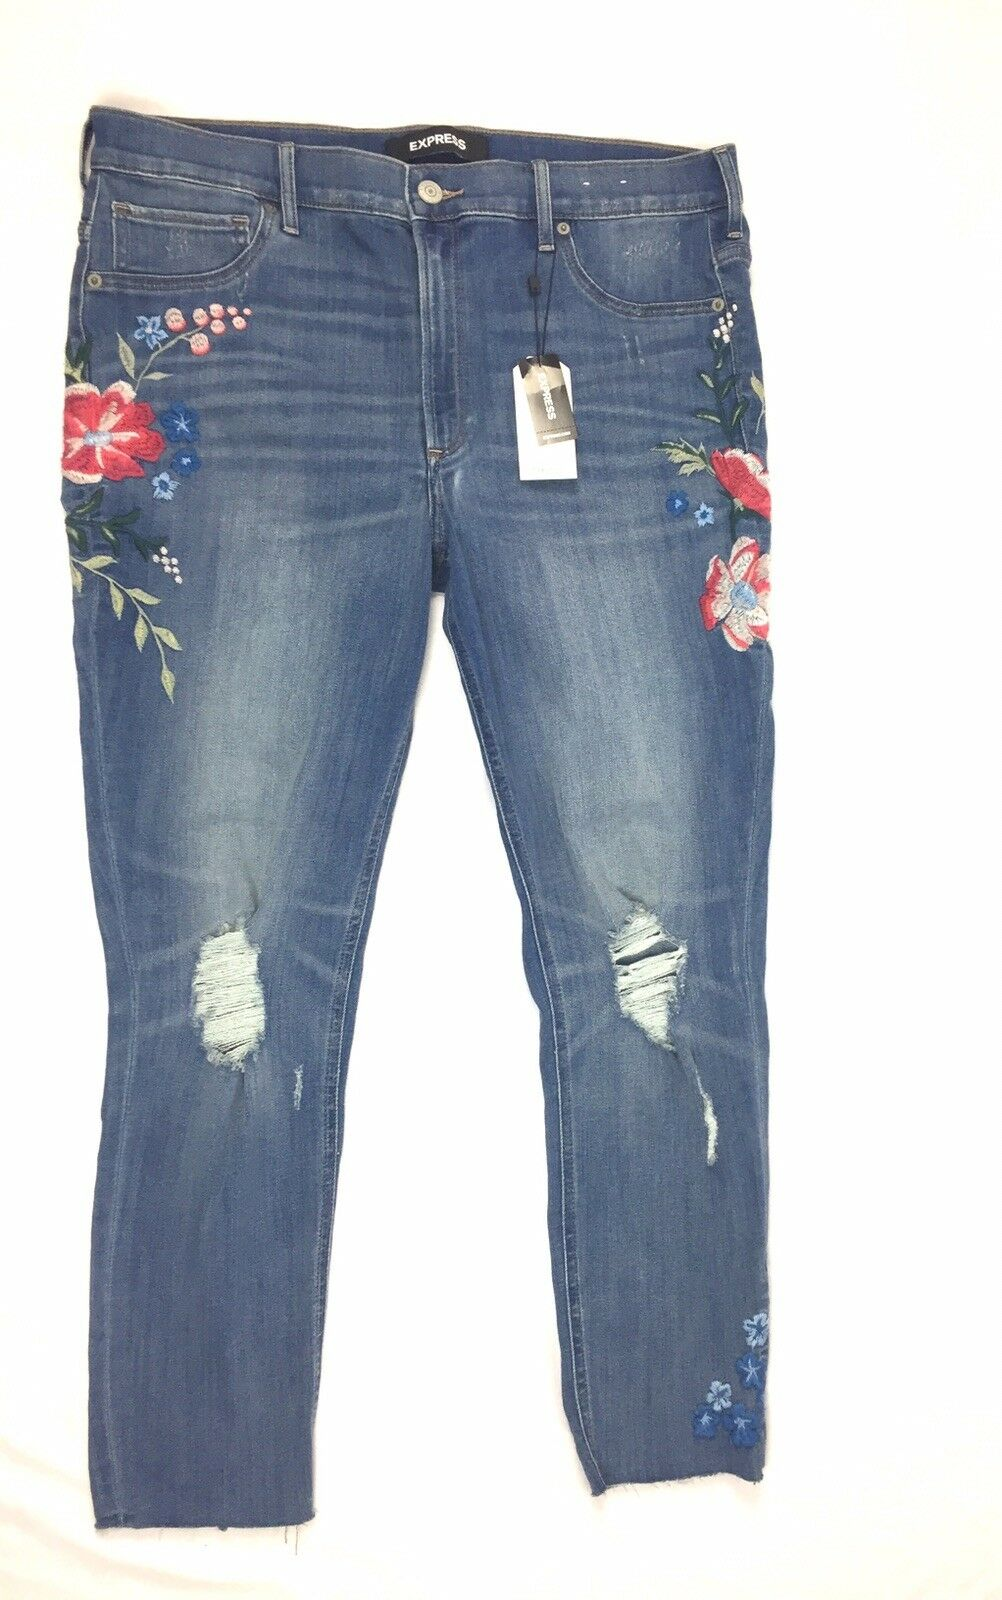 NWT Express Womens Size 16R Stretch Distressed Floral Ankle Denim Jeans MSRP  98